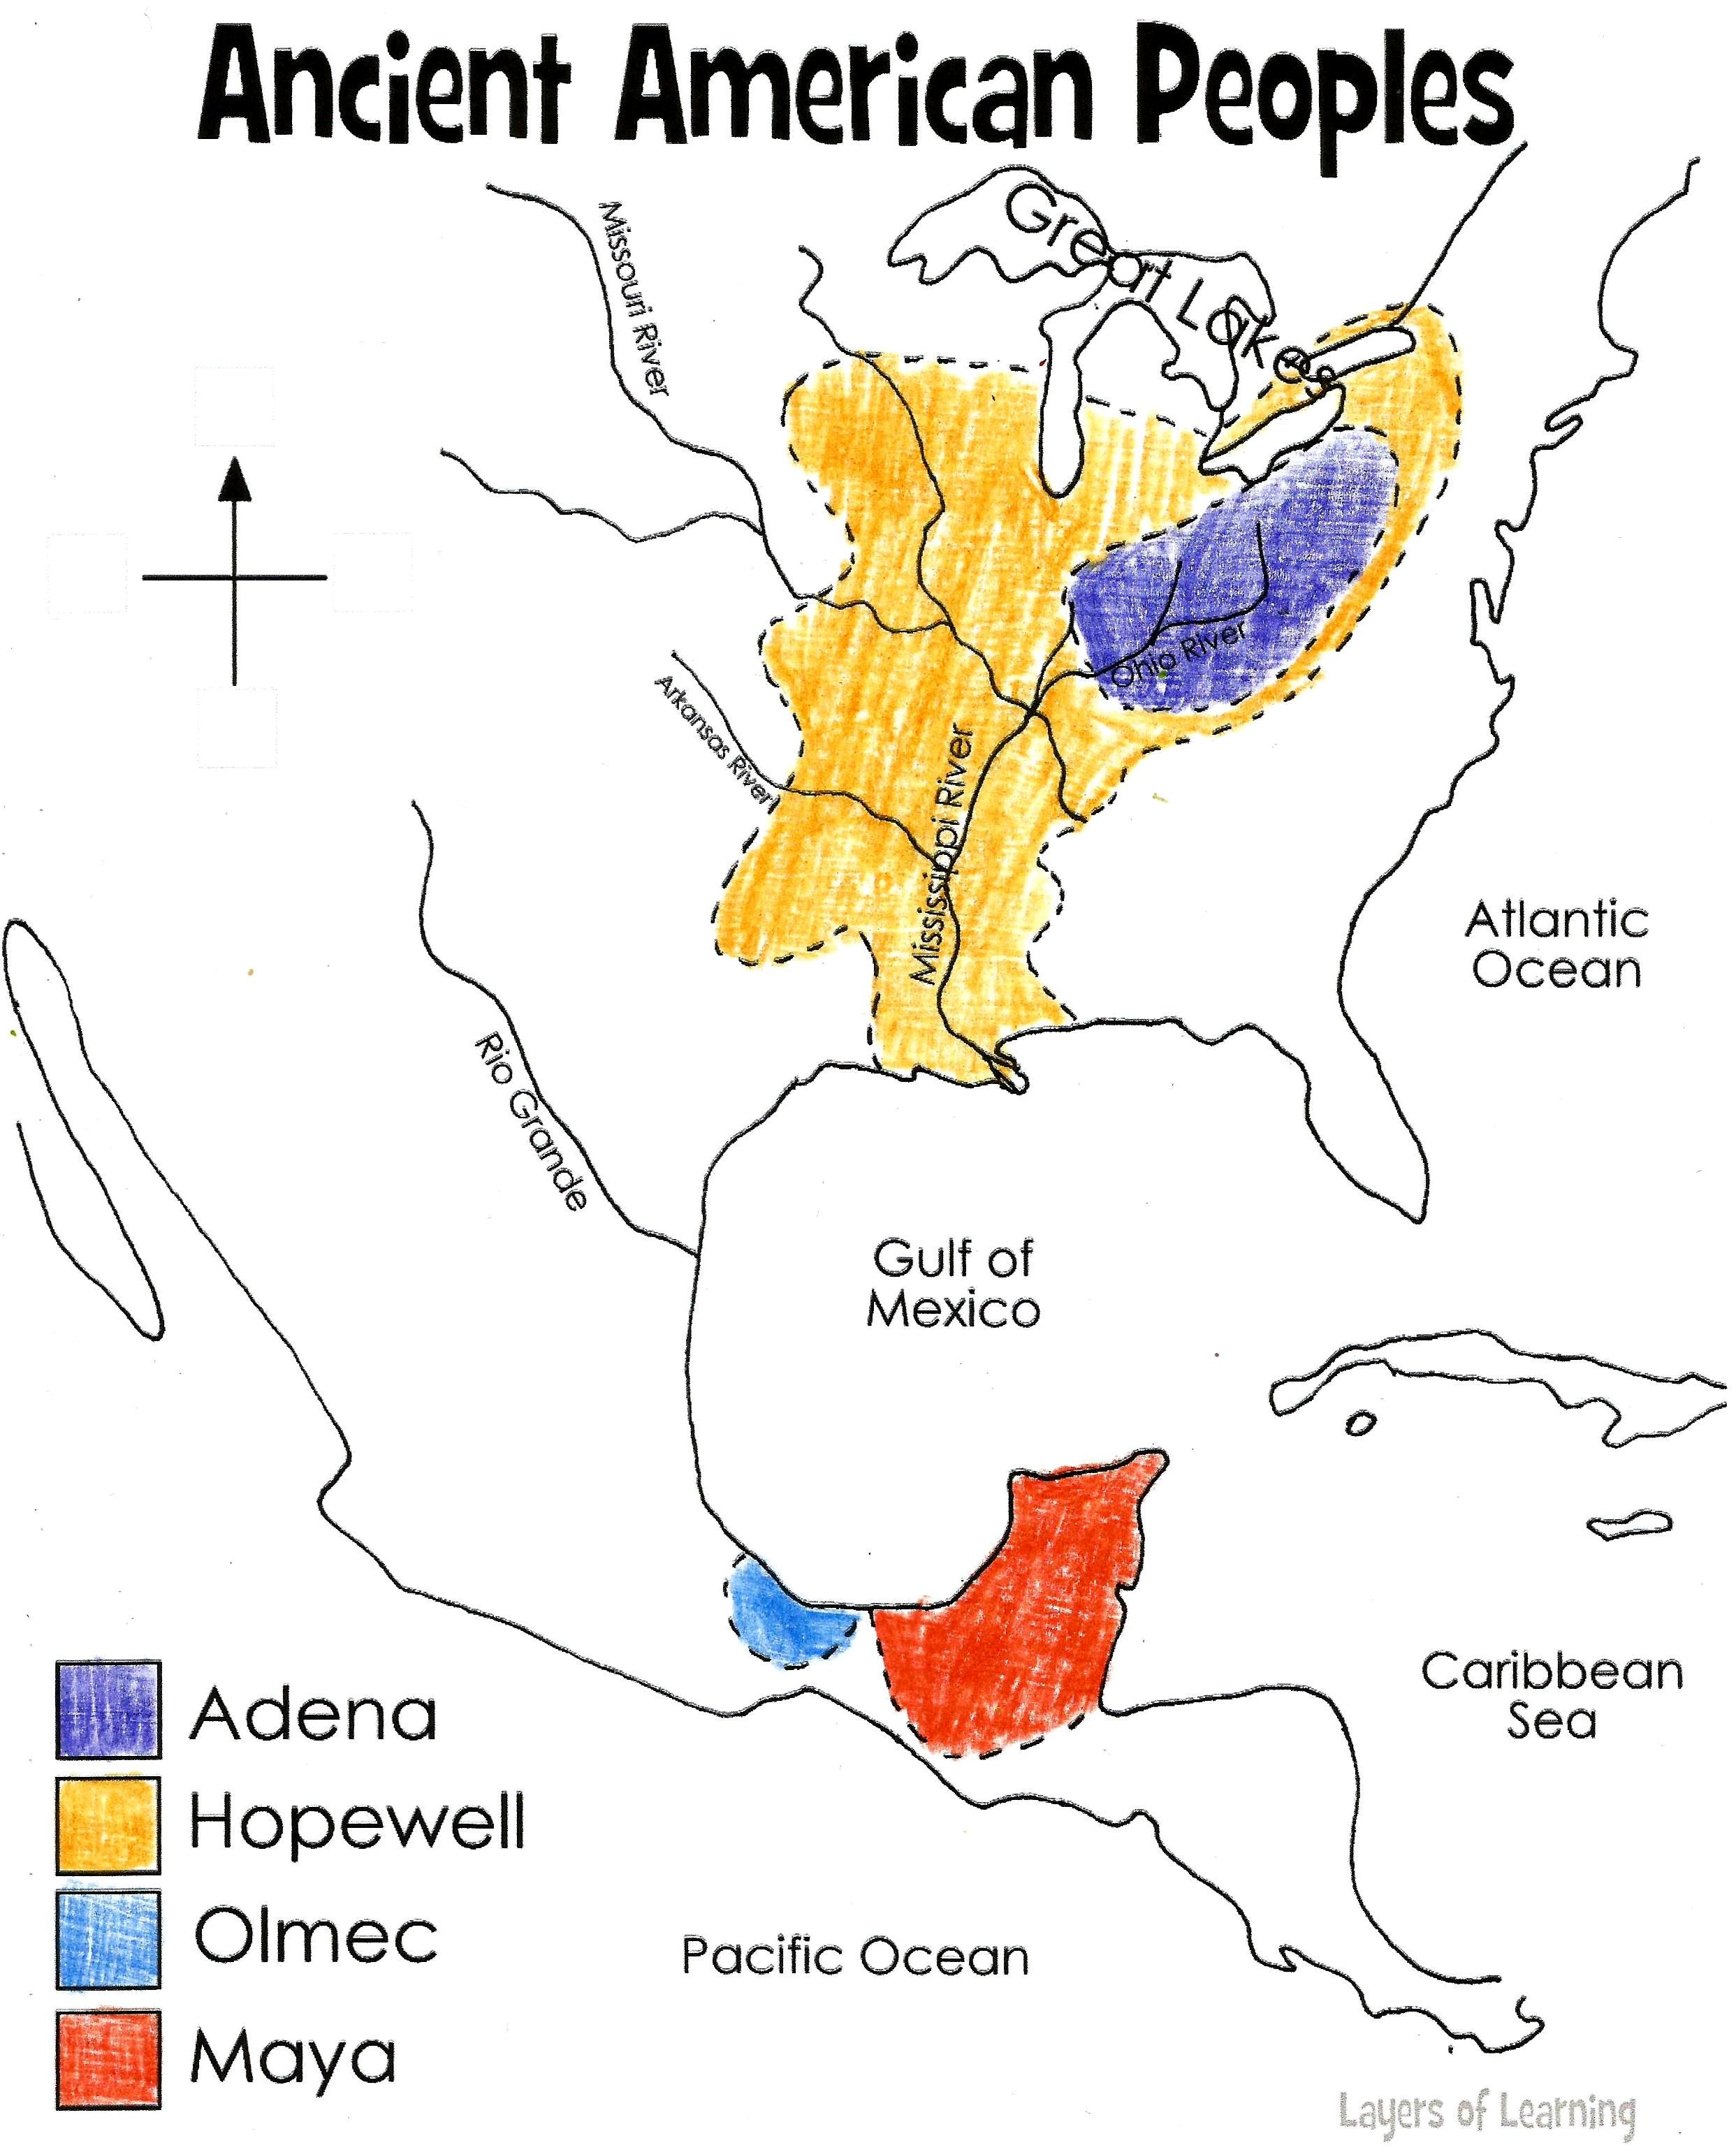 the hopewell people lived in north america along the ohio and